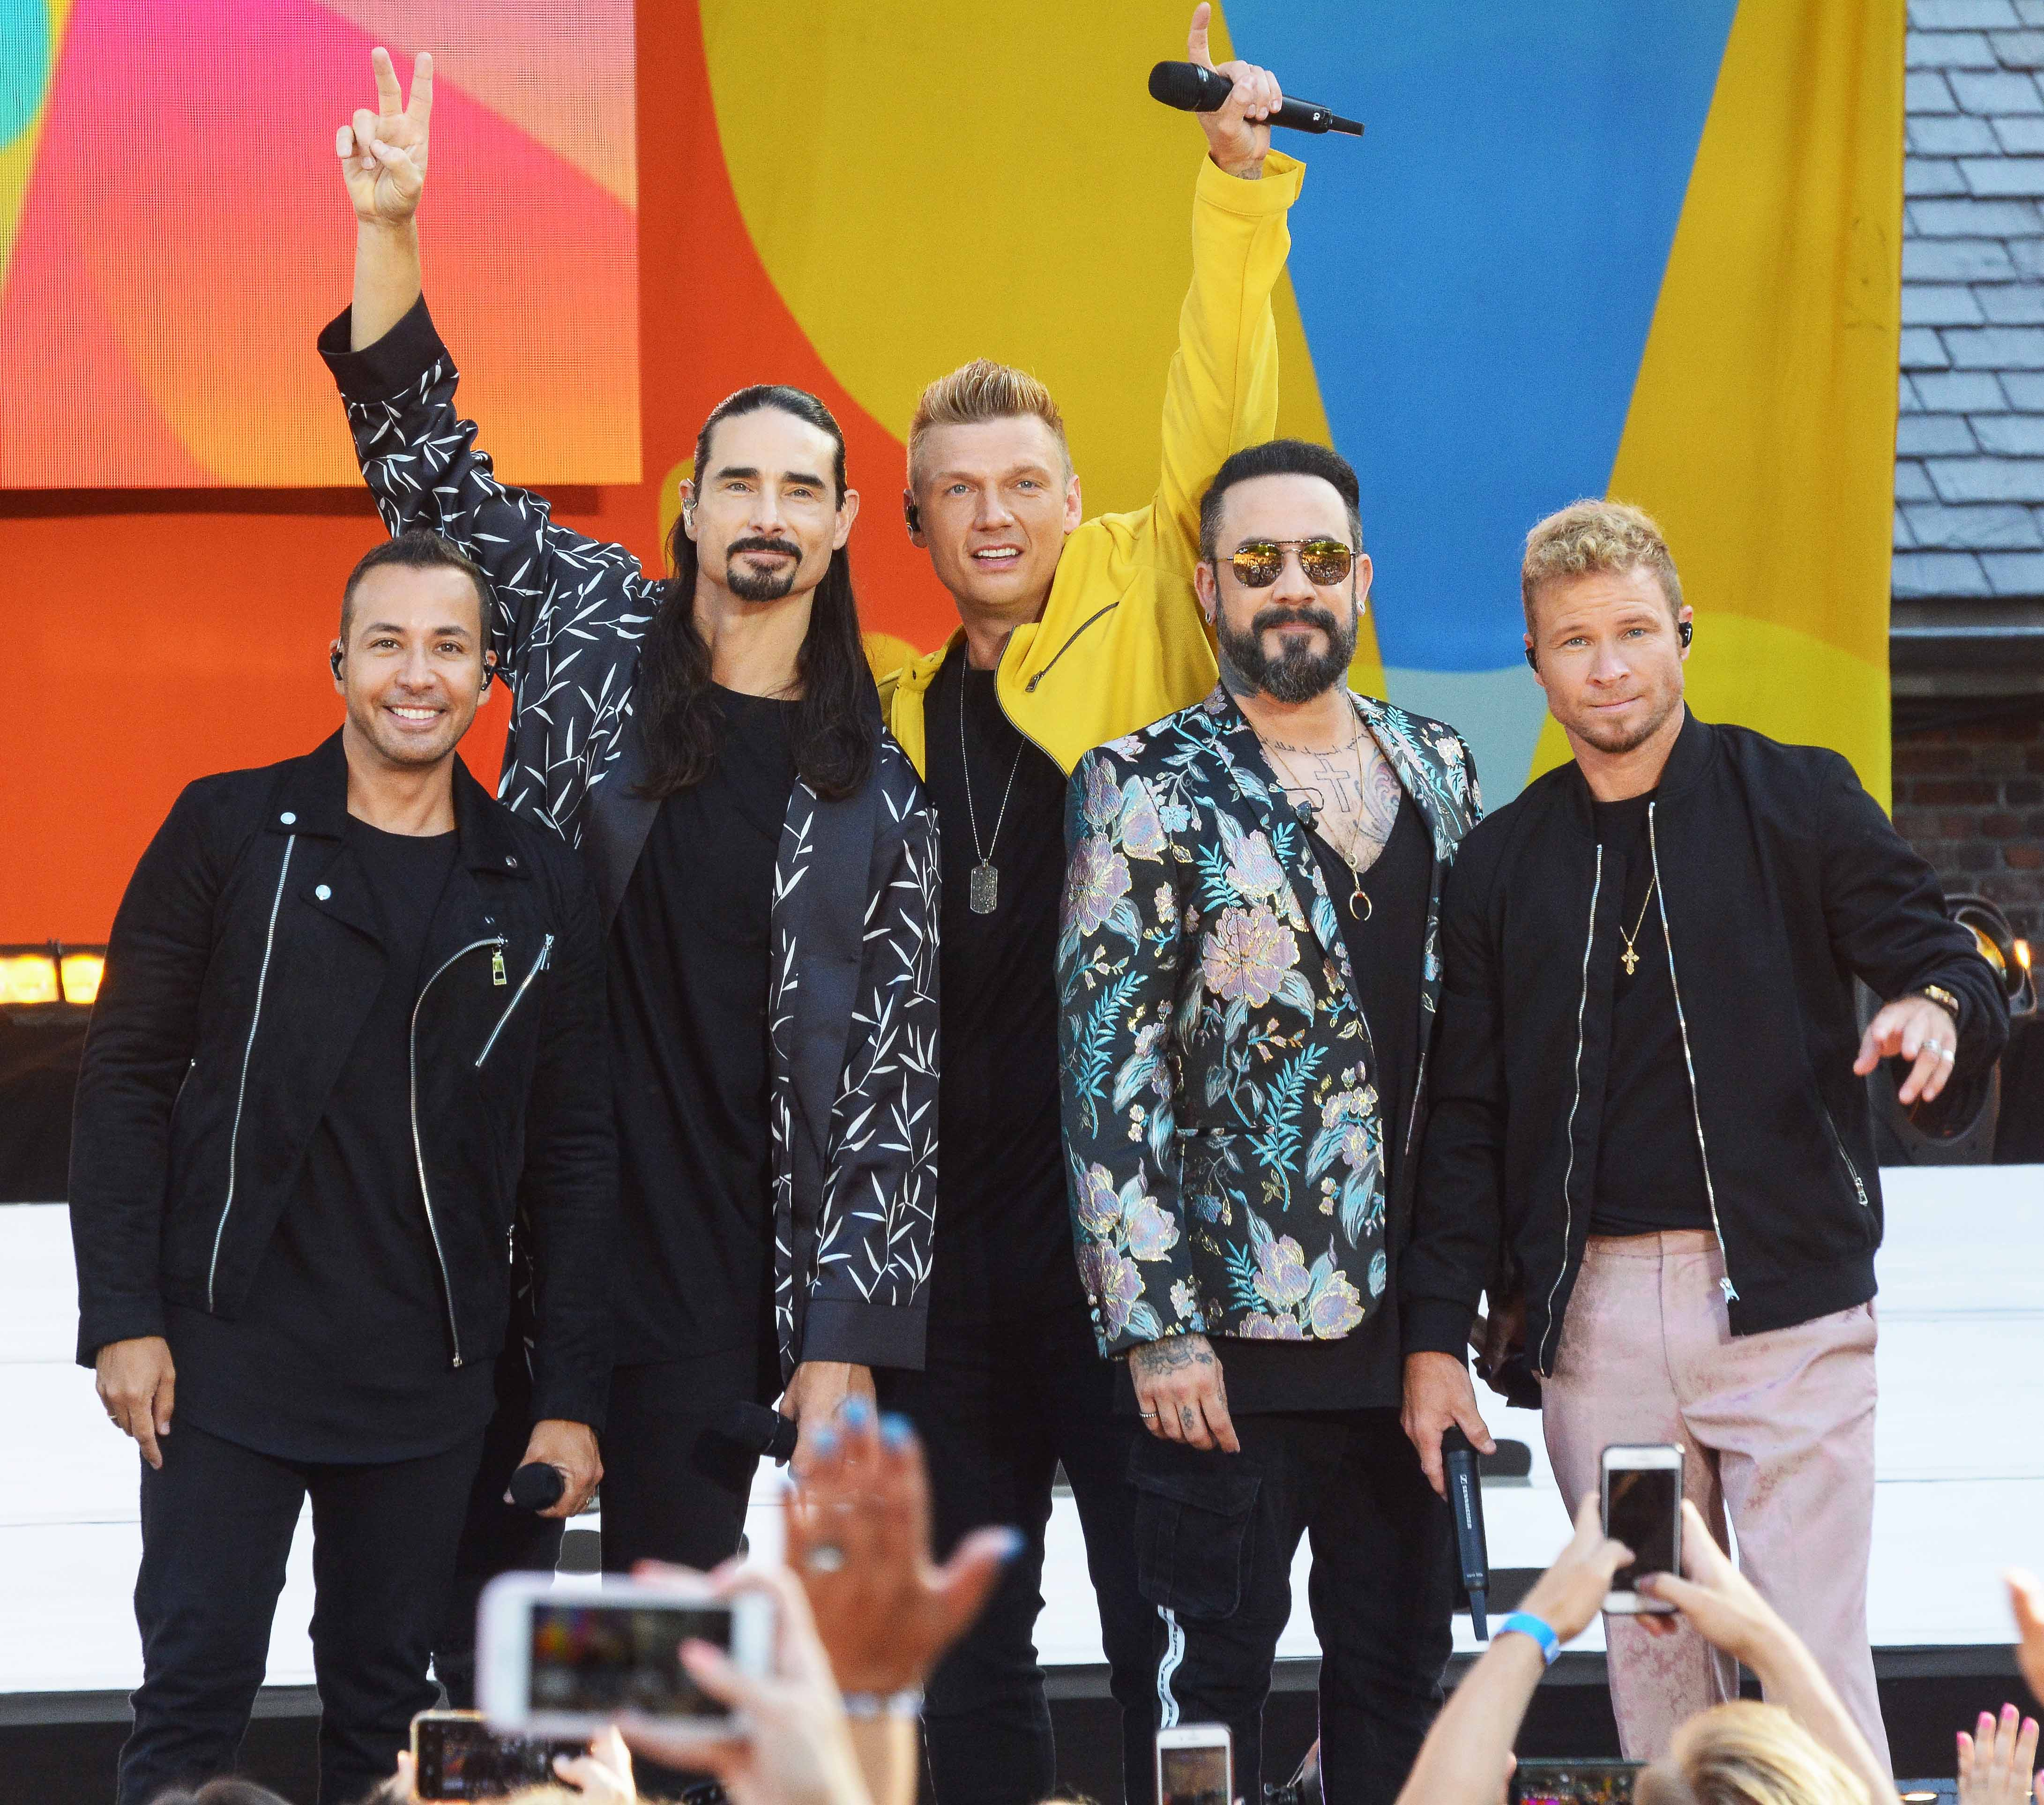 Backstreet Boys perform on 'Good Morning America' in New York City.Featuring: Backstreet BoysWhere: NYC, New York, United StatesWhen: 13 Jul 2018Credit: Patricia Schlein/WENN.com